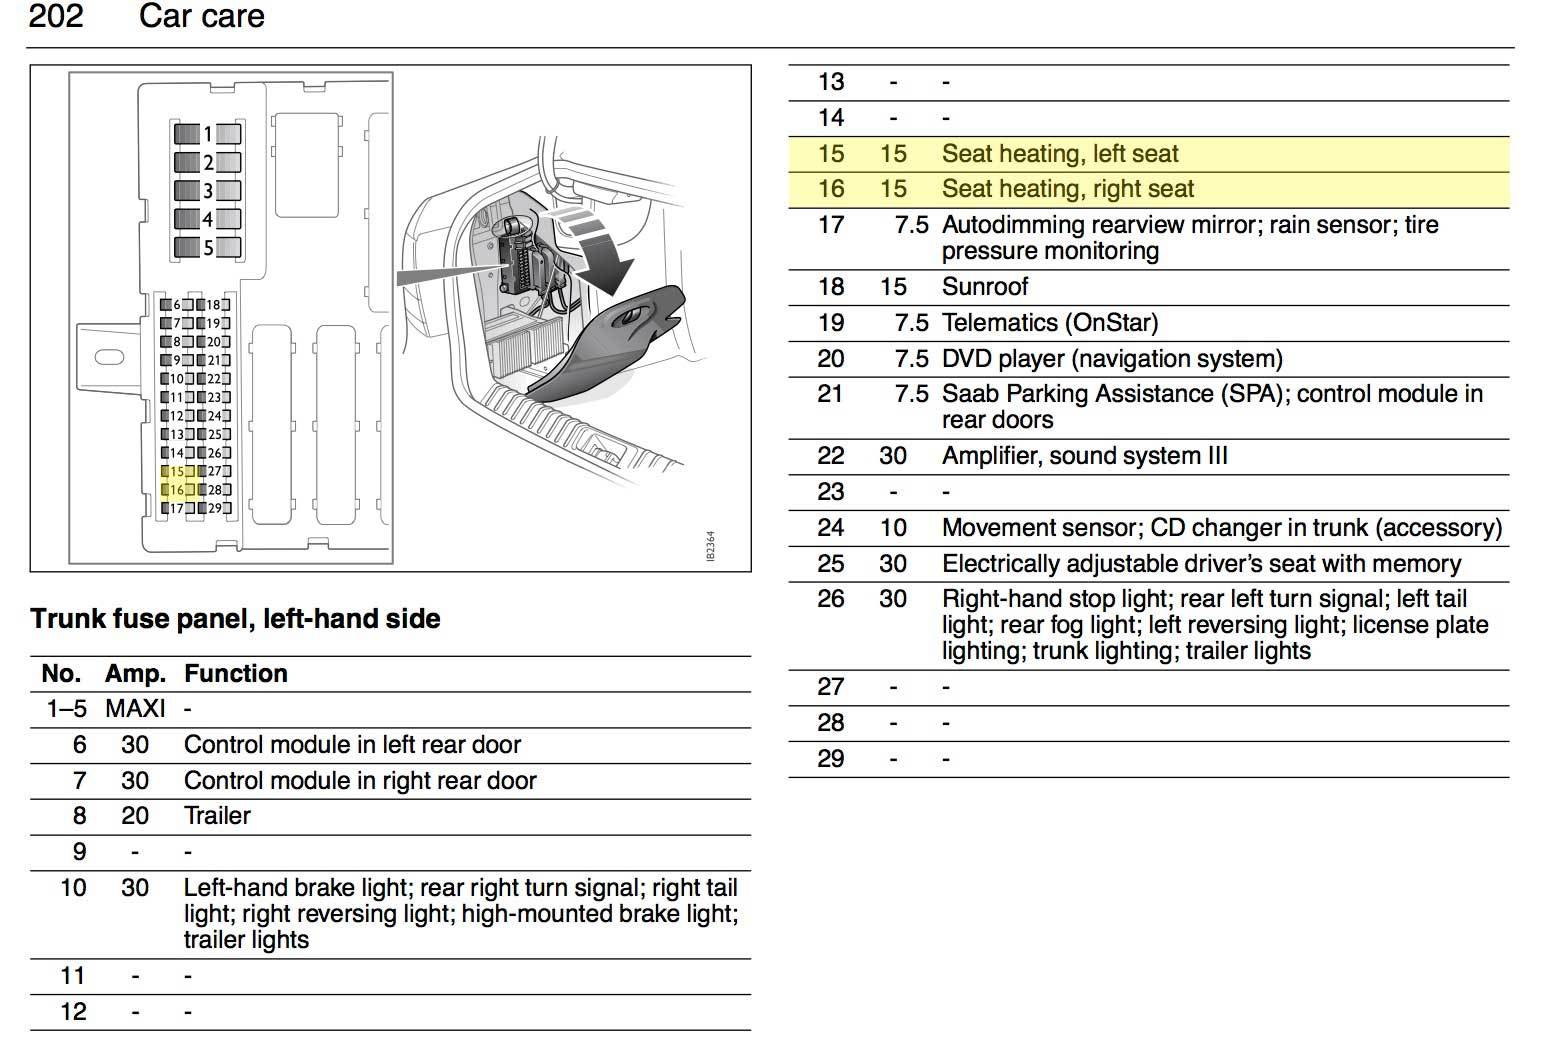 Saab 40 Fuse Box   Wiring Diagram All hard about   hard about ...